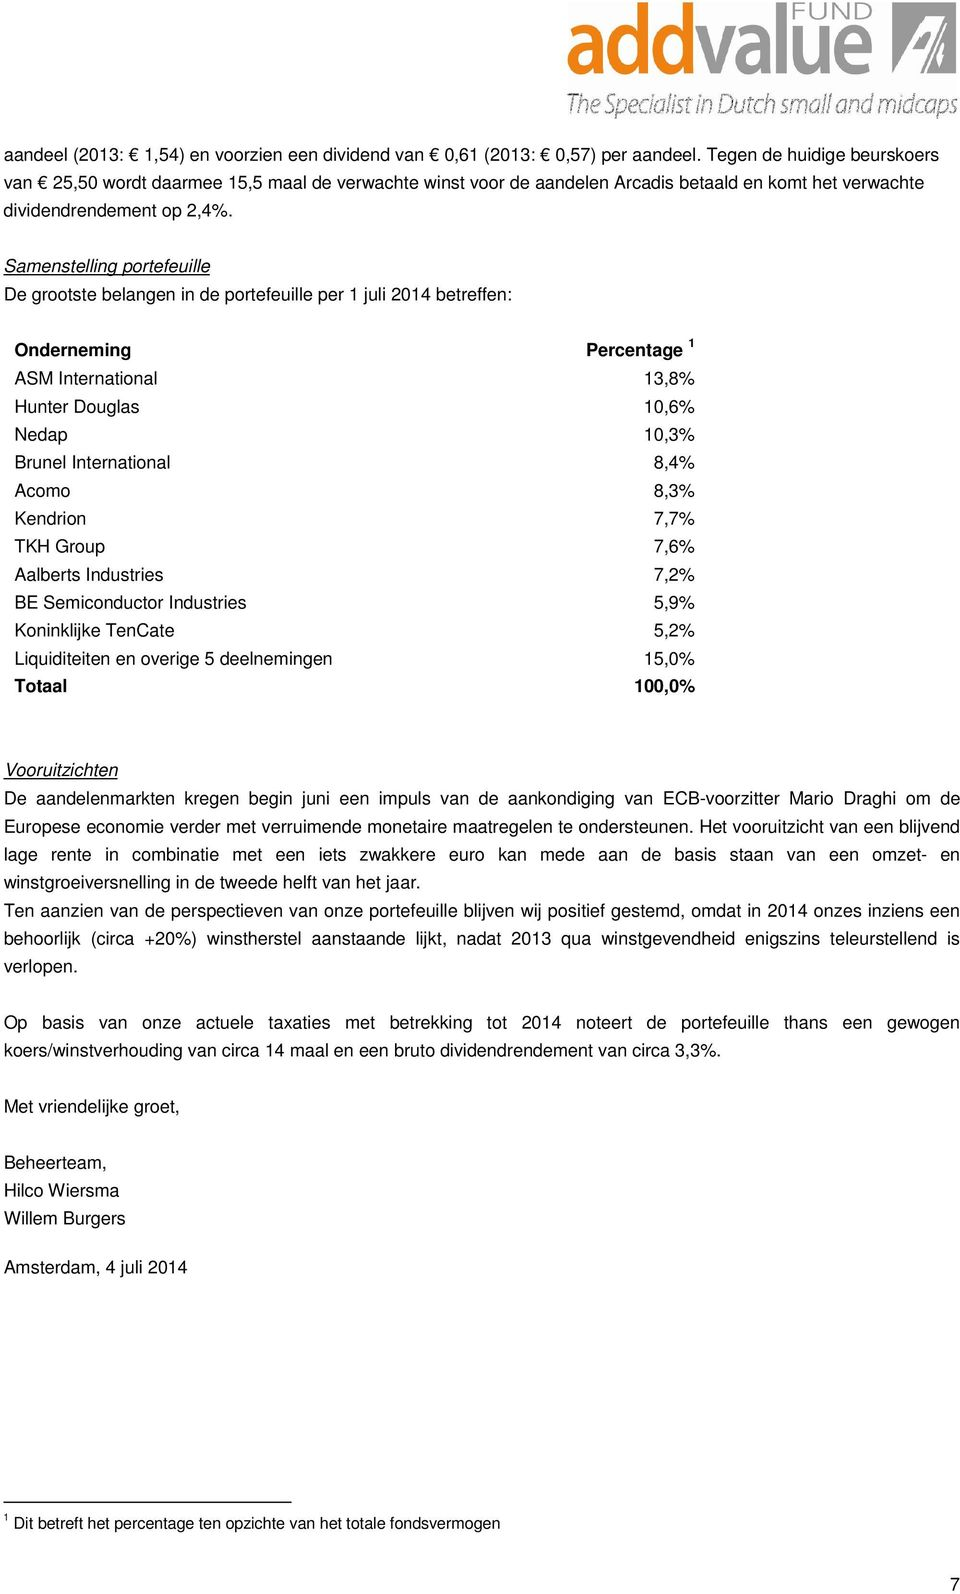 Samenstelling portefeuille De grootste belangen in de portefeuille per 1 juli 2014 betreffen: Onderneming Percentage 1 ASM International 13,8% Hunter Douglas 10,6% Nedap 10,3% Brunel International